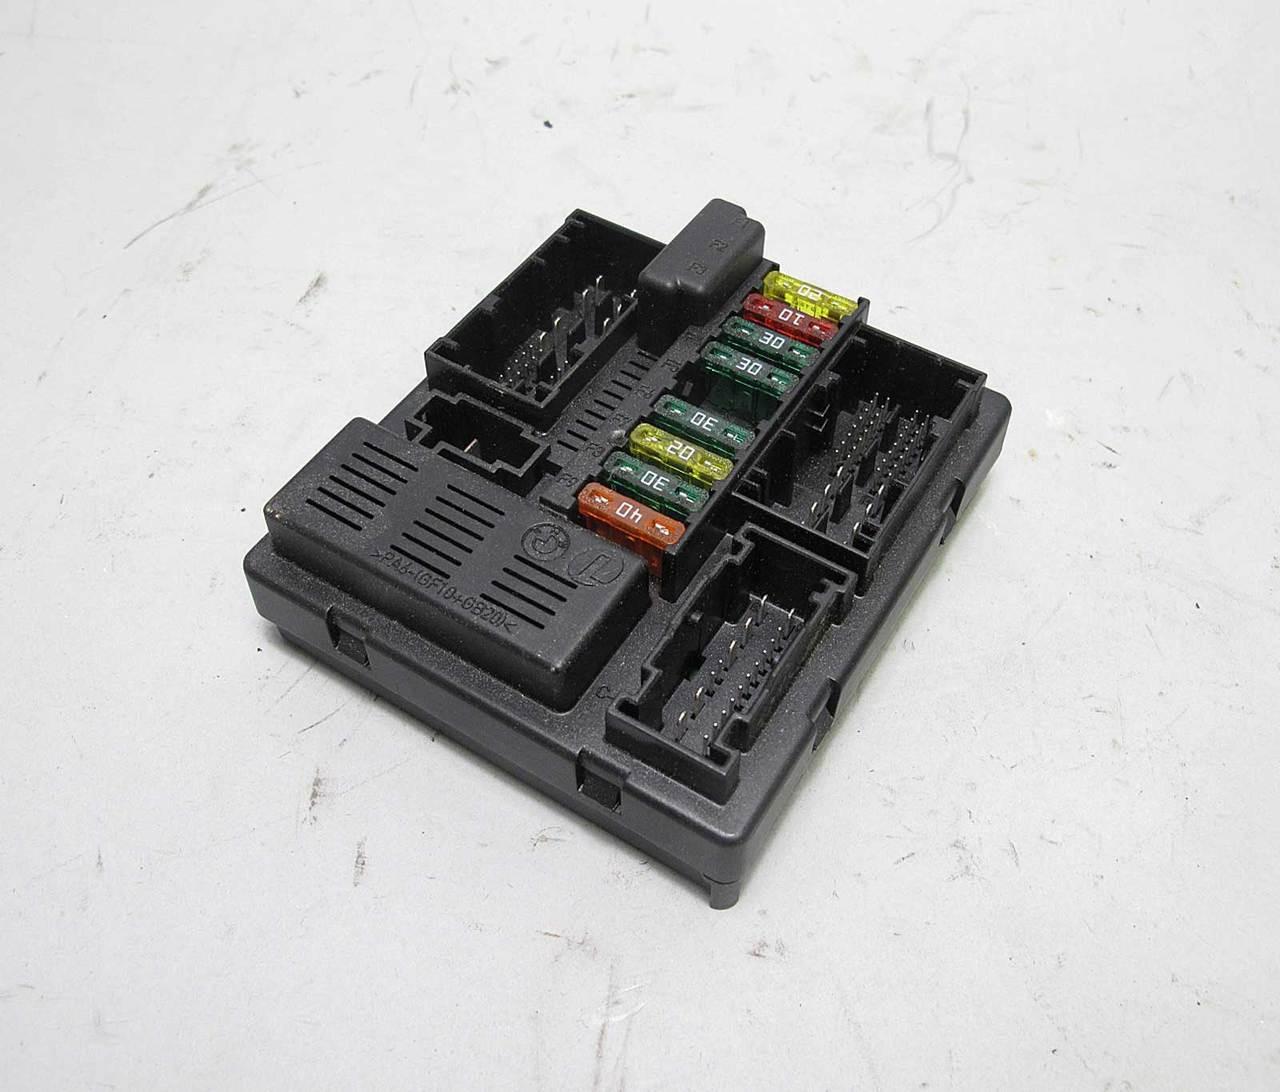 hight resolution of bmw z4 x3 3 0i under hood fuse box electrical distribution module rh prussianmotors com